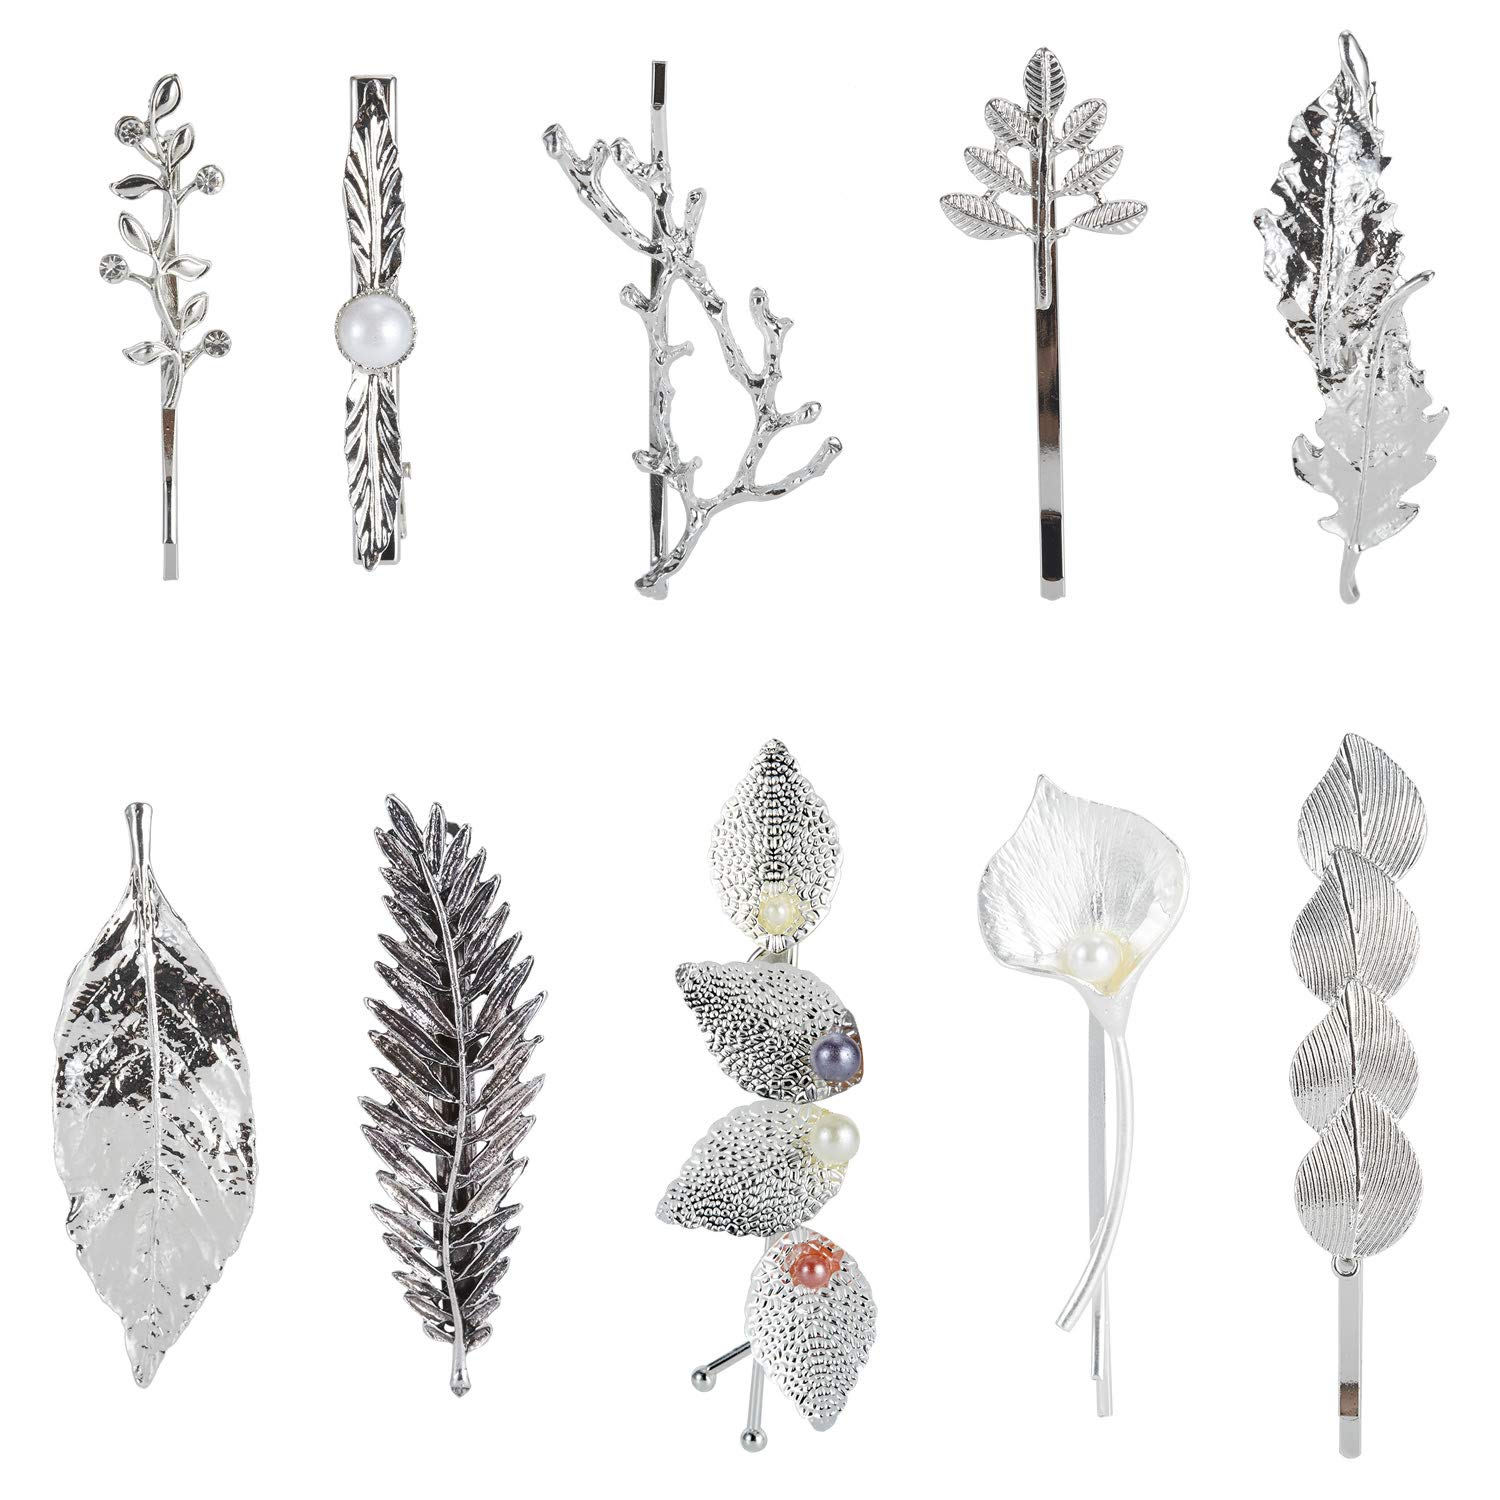 10 Pack Silver Vintage Retro Geometric Minimalist Branch Leaf Flower Metal Hair Clip Hairpin Snap Barrette Stick Claw Grip Clamp Bobby Pins Alligator Hairclips Party Hair Accessories for Women Girl